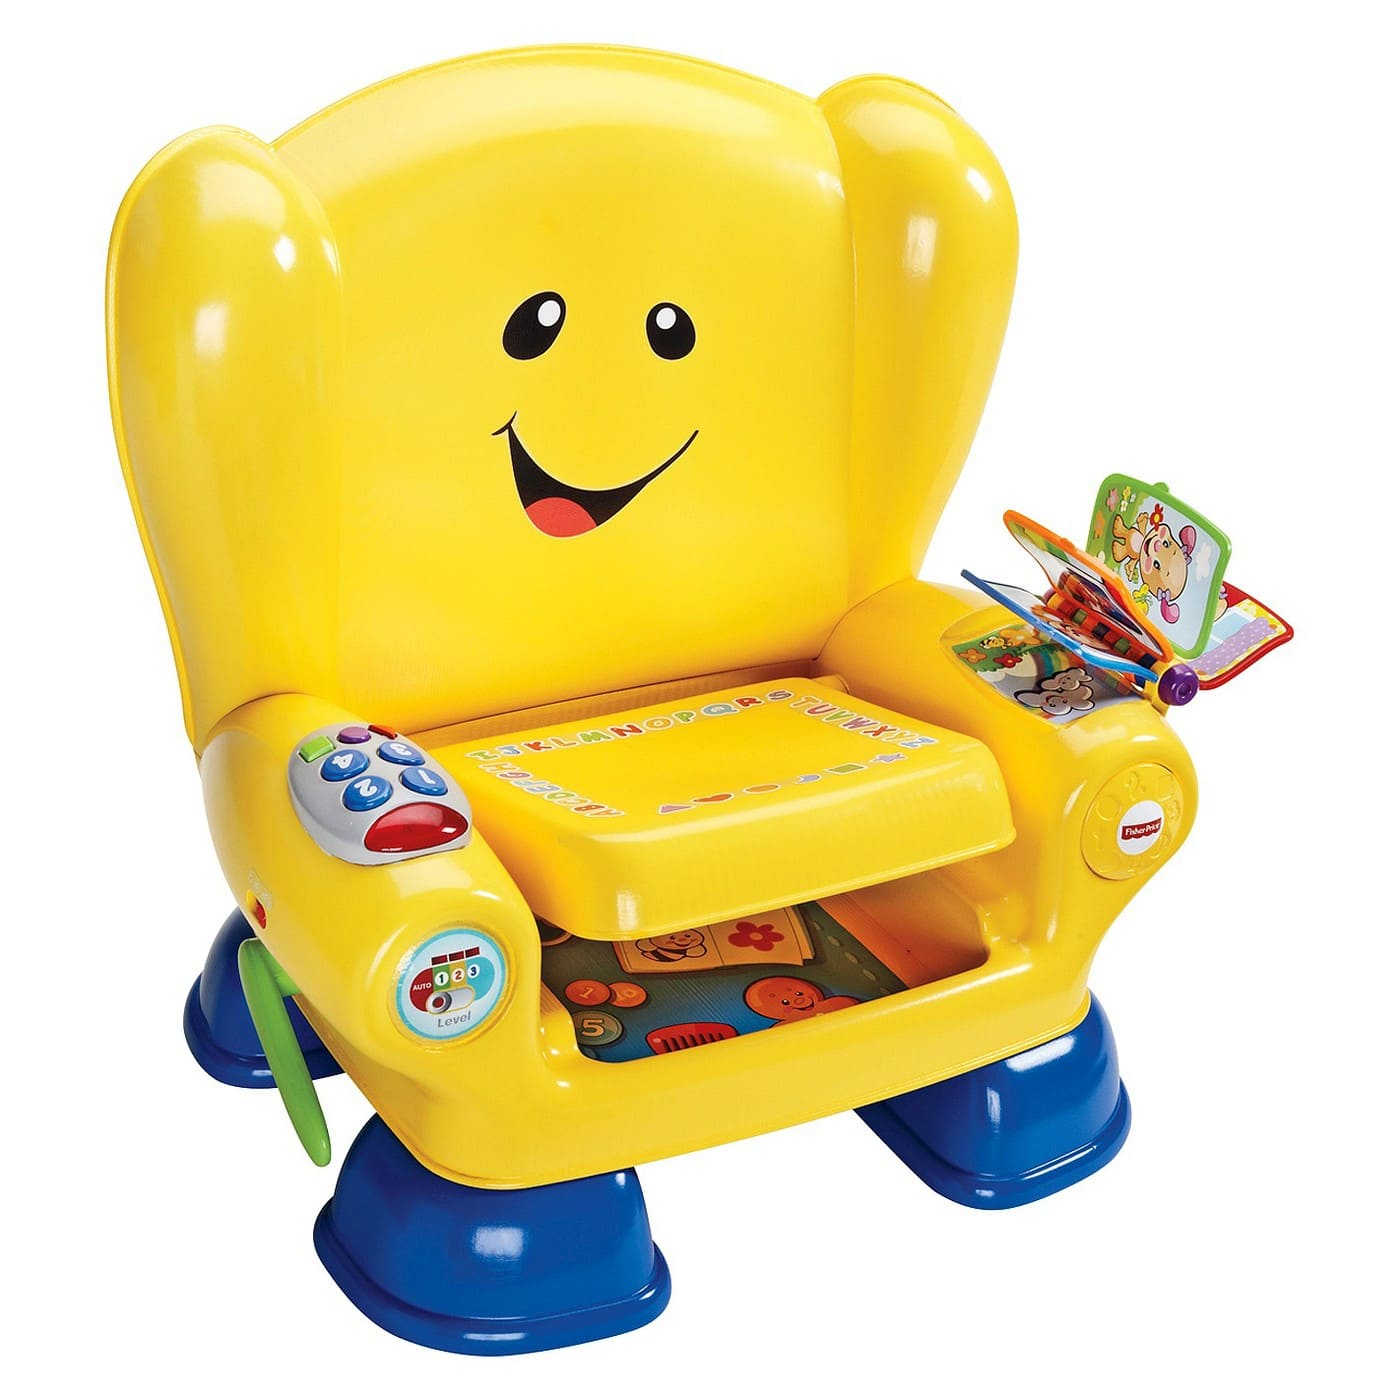 Fisher-Price Laugh & Learn Smart Stages Chair - Slickdeals.net